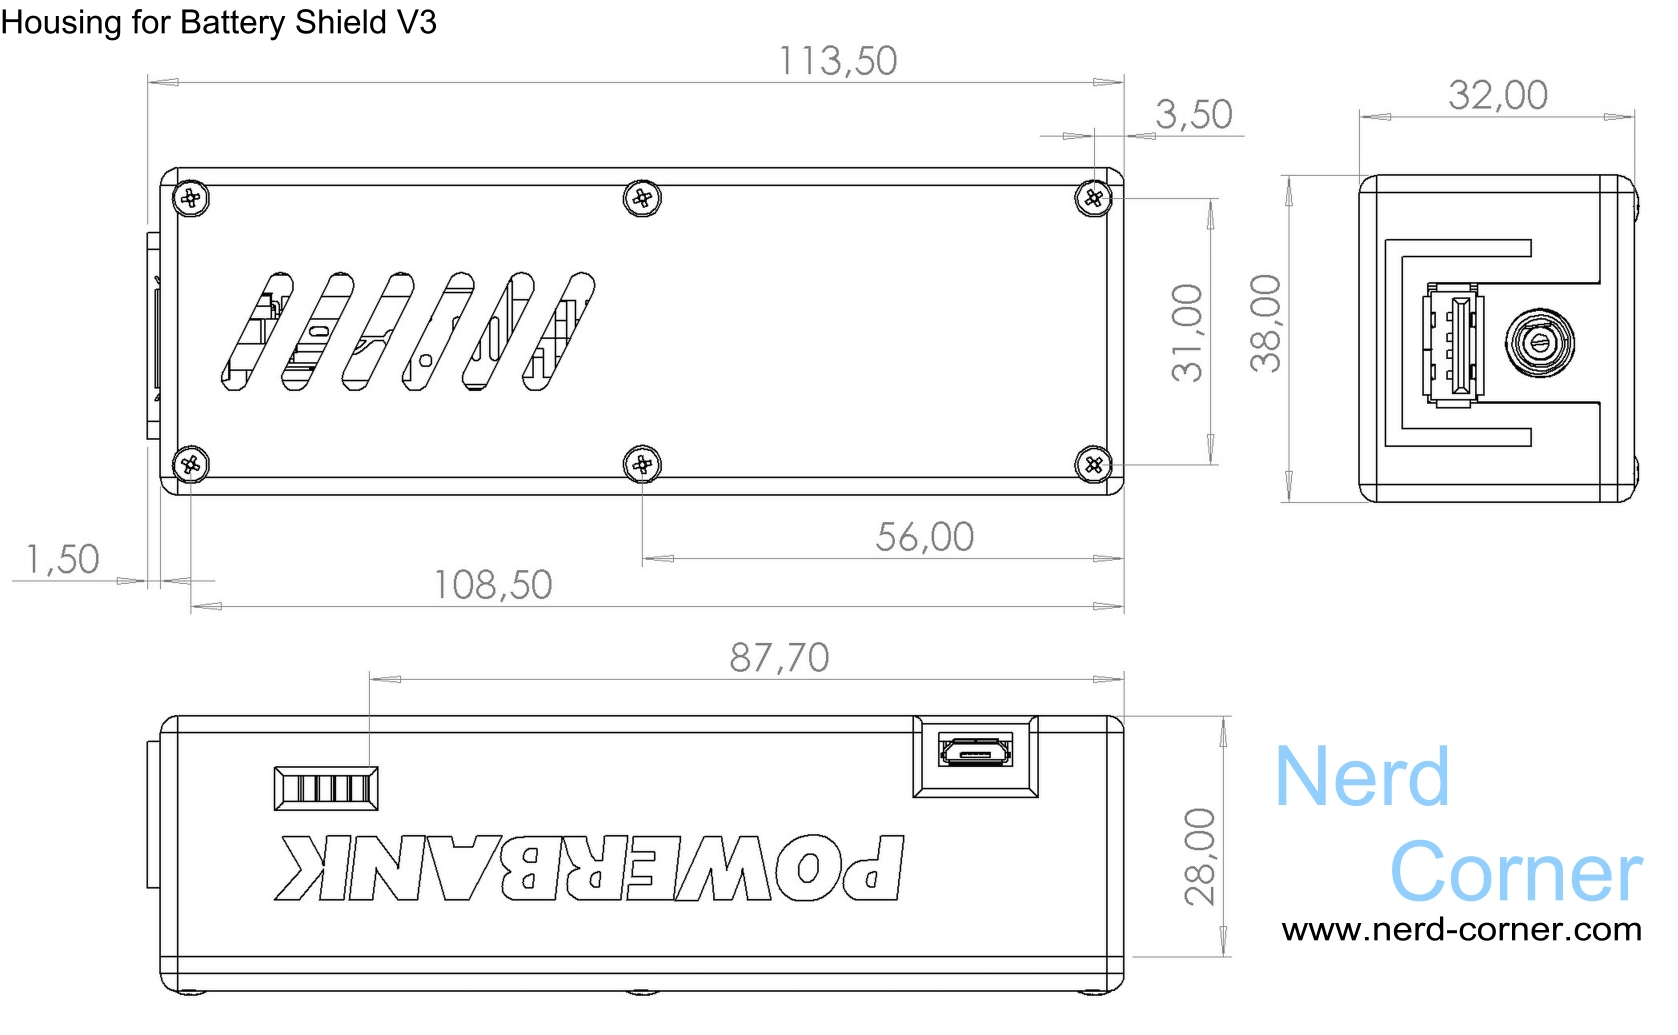 CAD plan with size for the battery shield v3